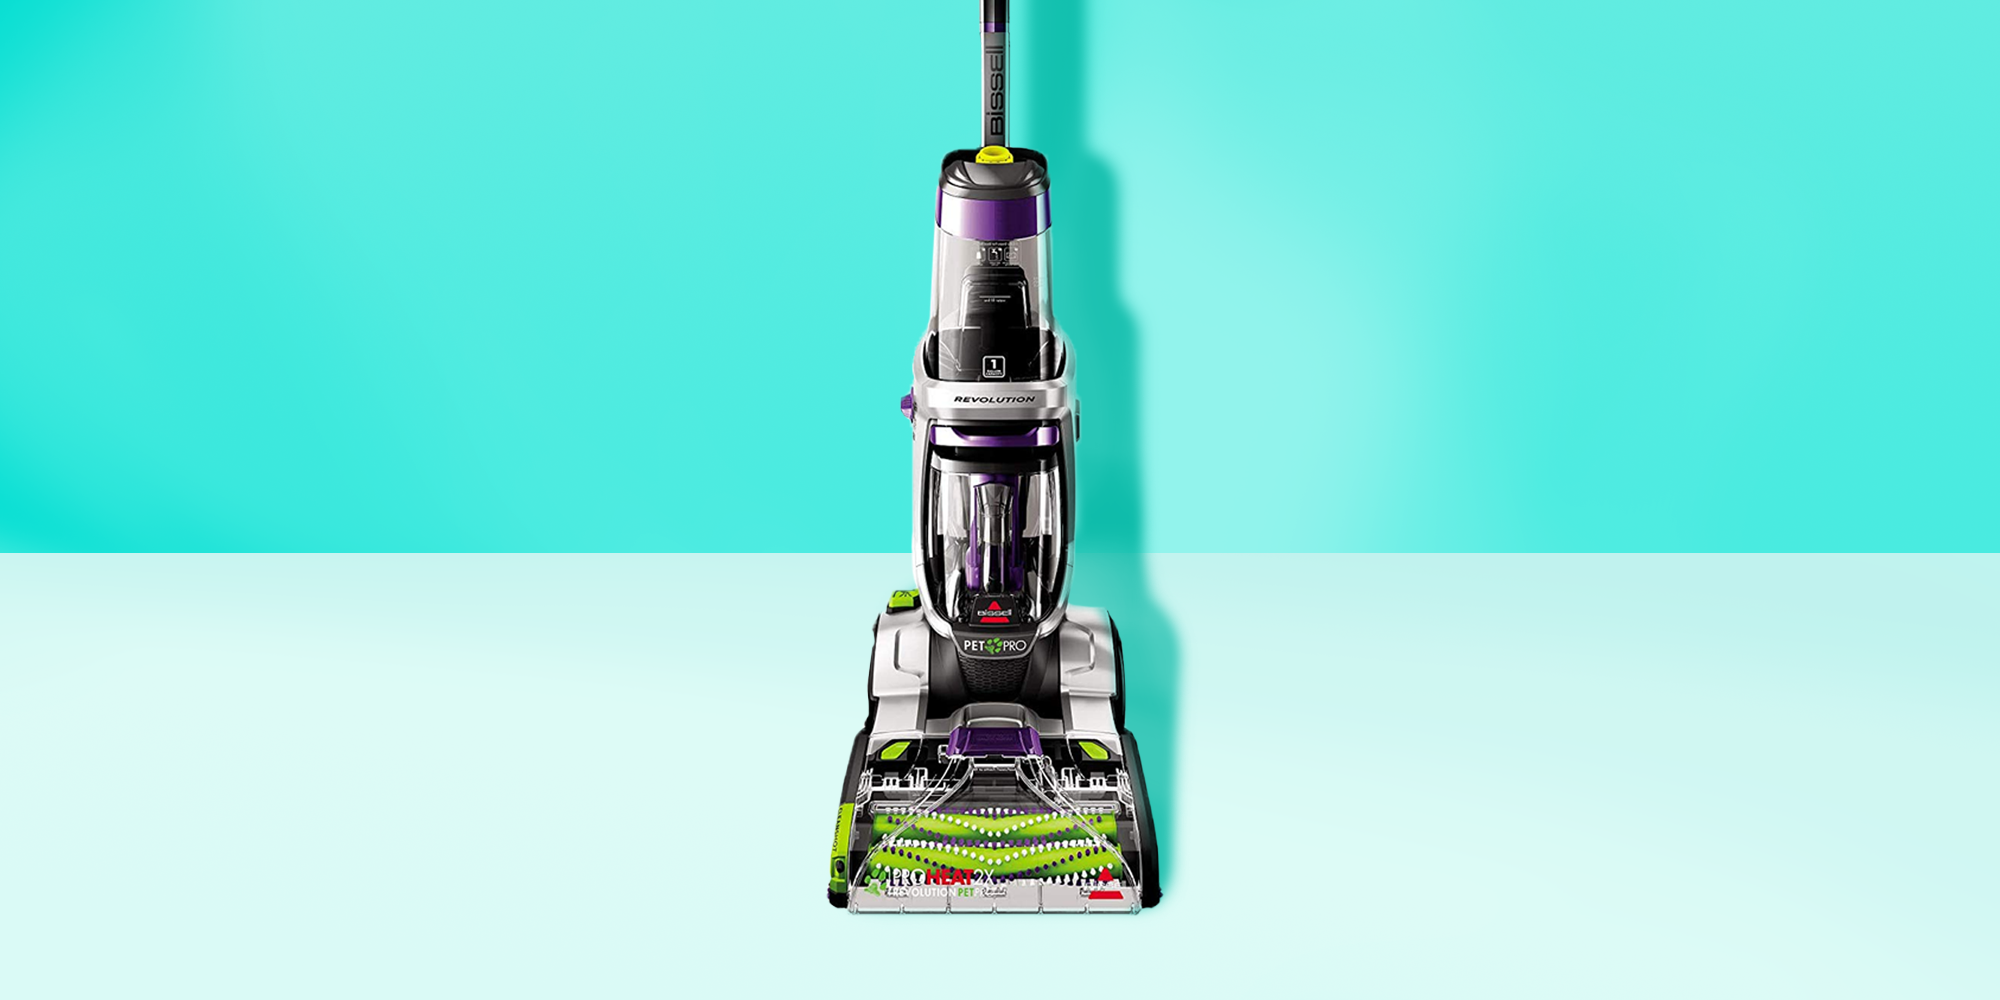 5 Best Carpet Cleaners to Buy 2019 - Top Carpet Cleaning